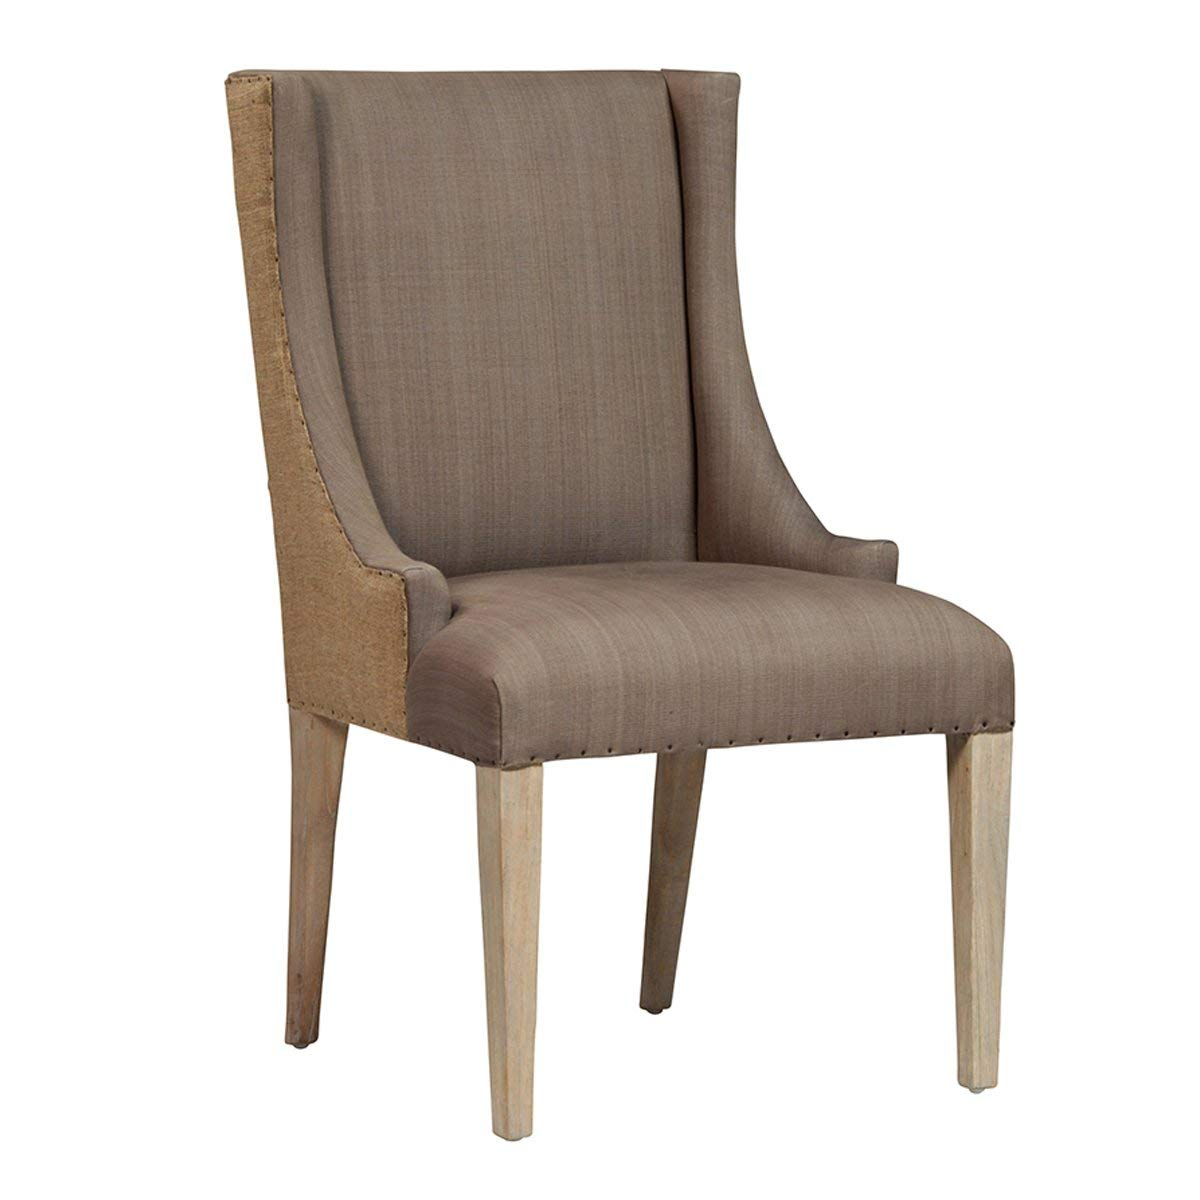 affordable upholstered dining chairs shabby chic table and cheap chair find deals get quotations linen